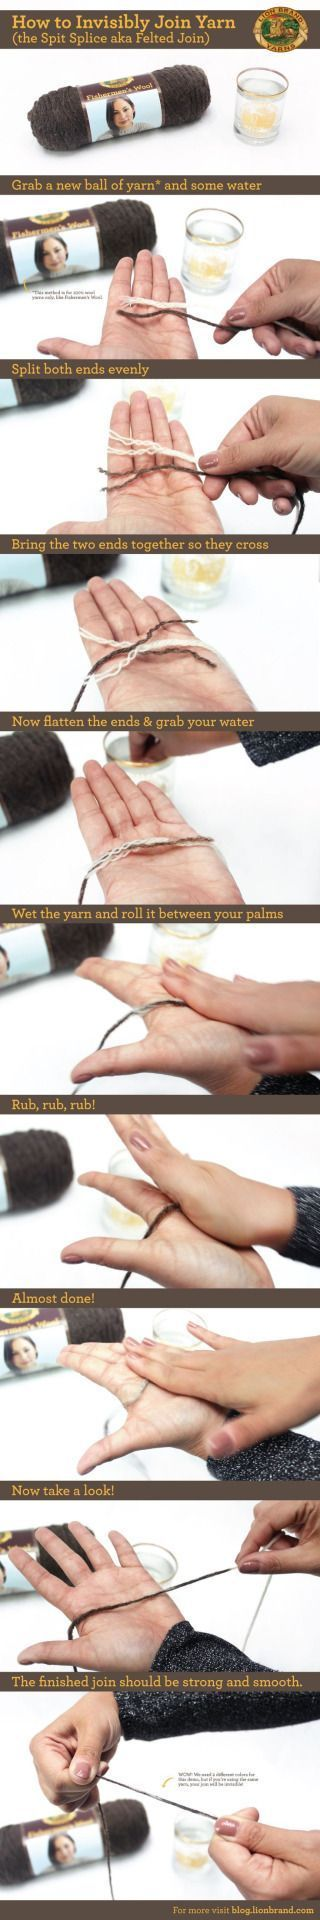 Why have I never thoughts of this? I just posted about the weaver's knot a few posts back, but this is tons better. Source: lionbrand.com